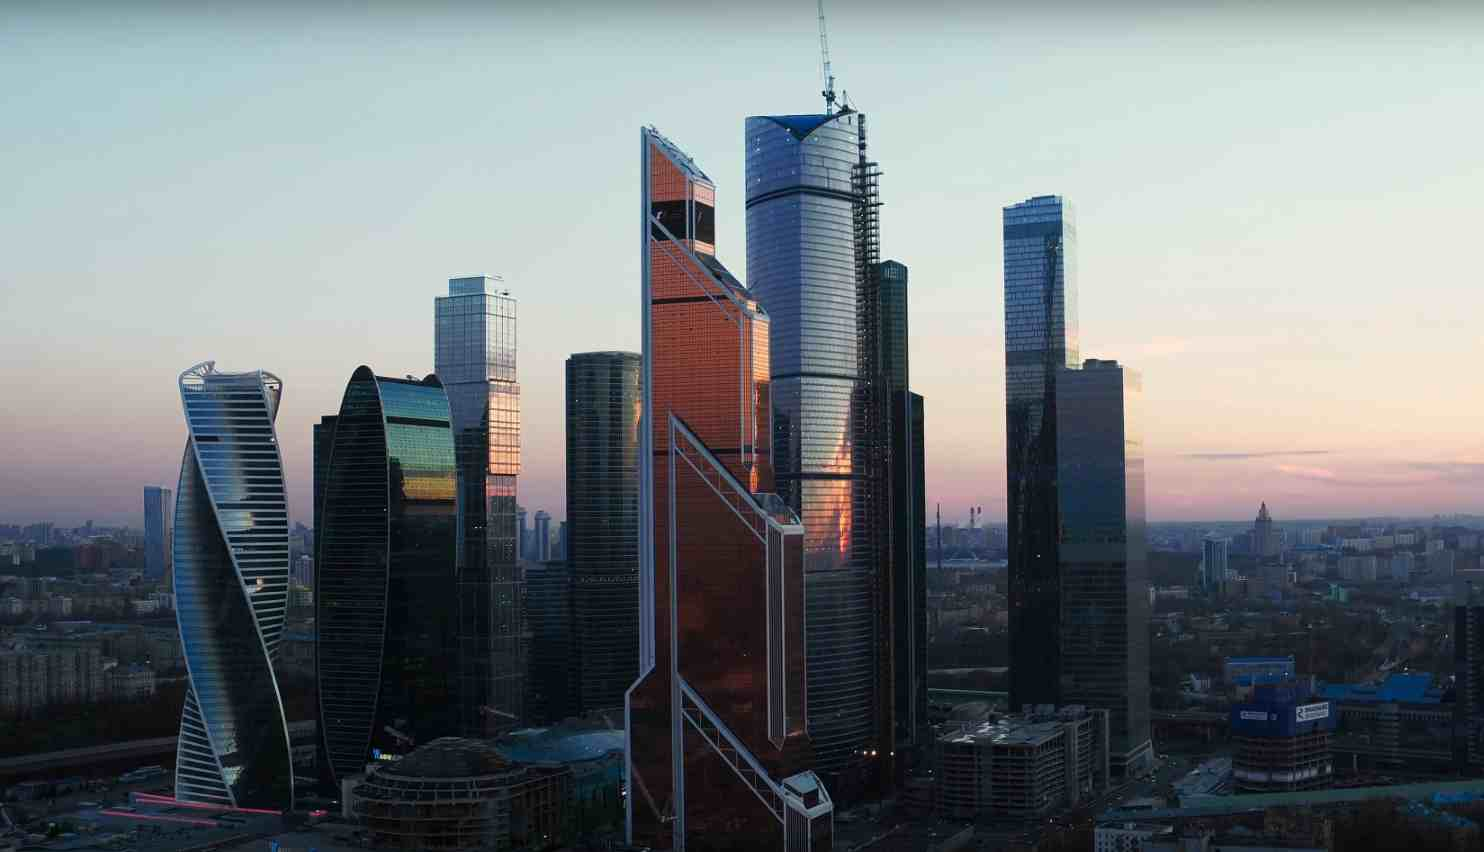 The Moscow Intenational Business Center